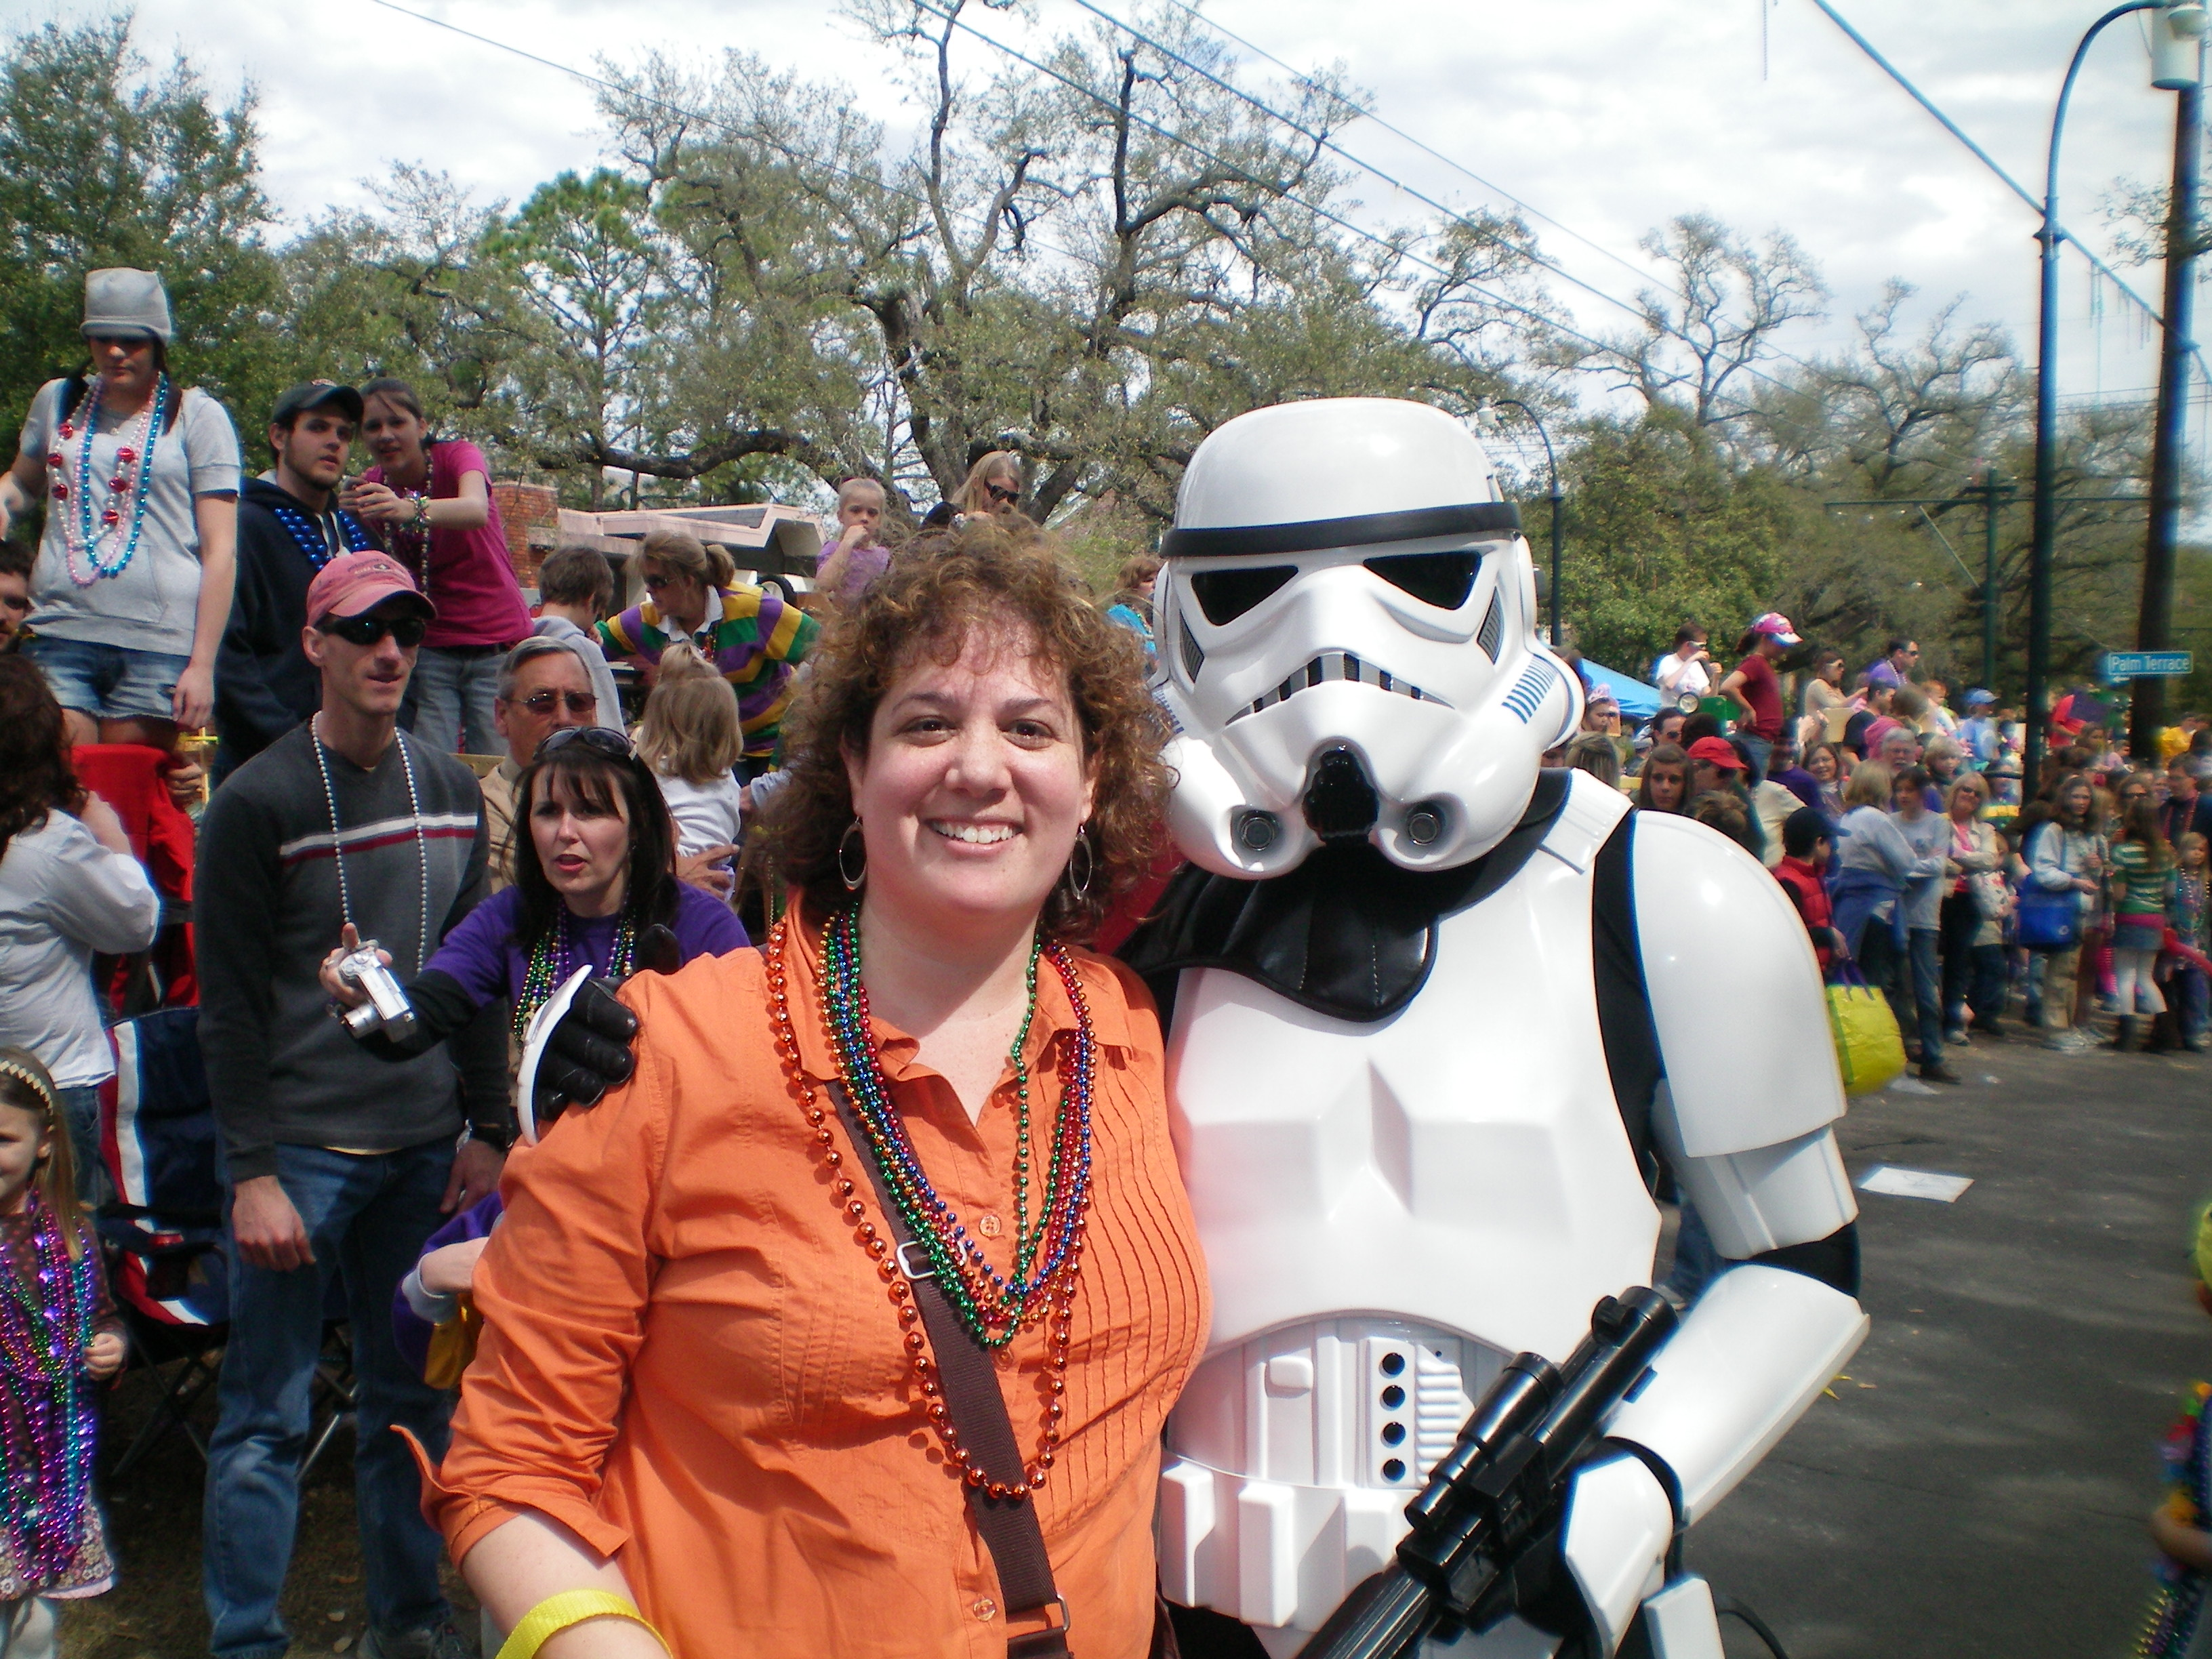 Storm Trooper at Mardi Gras Parade